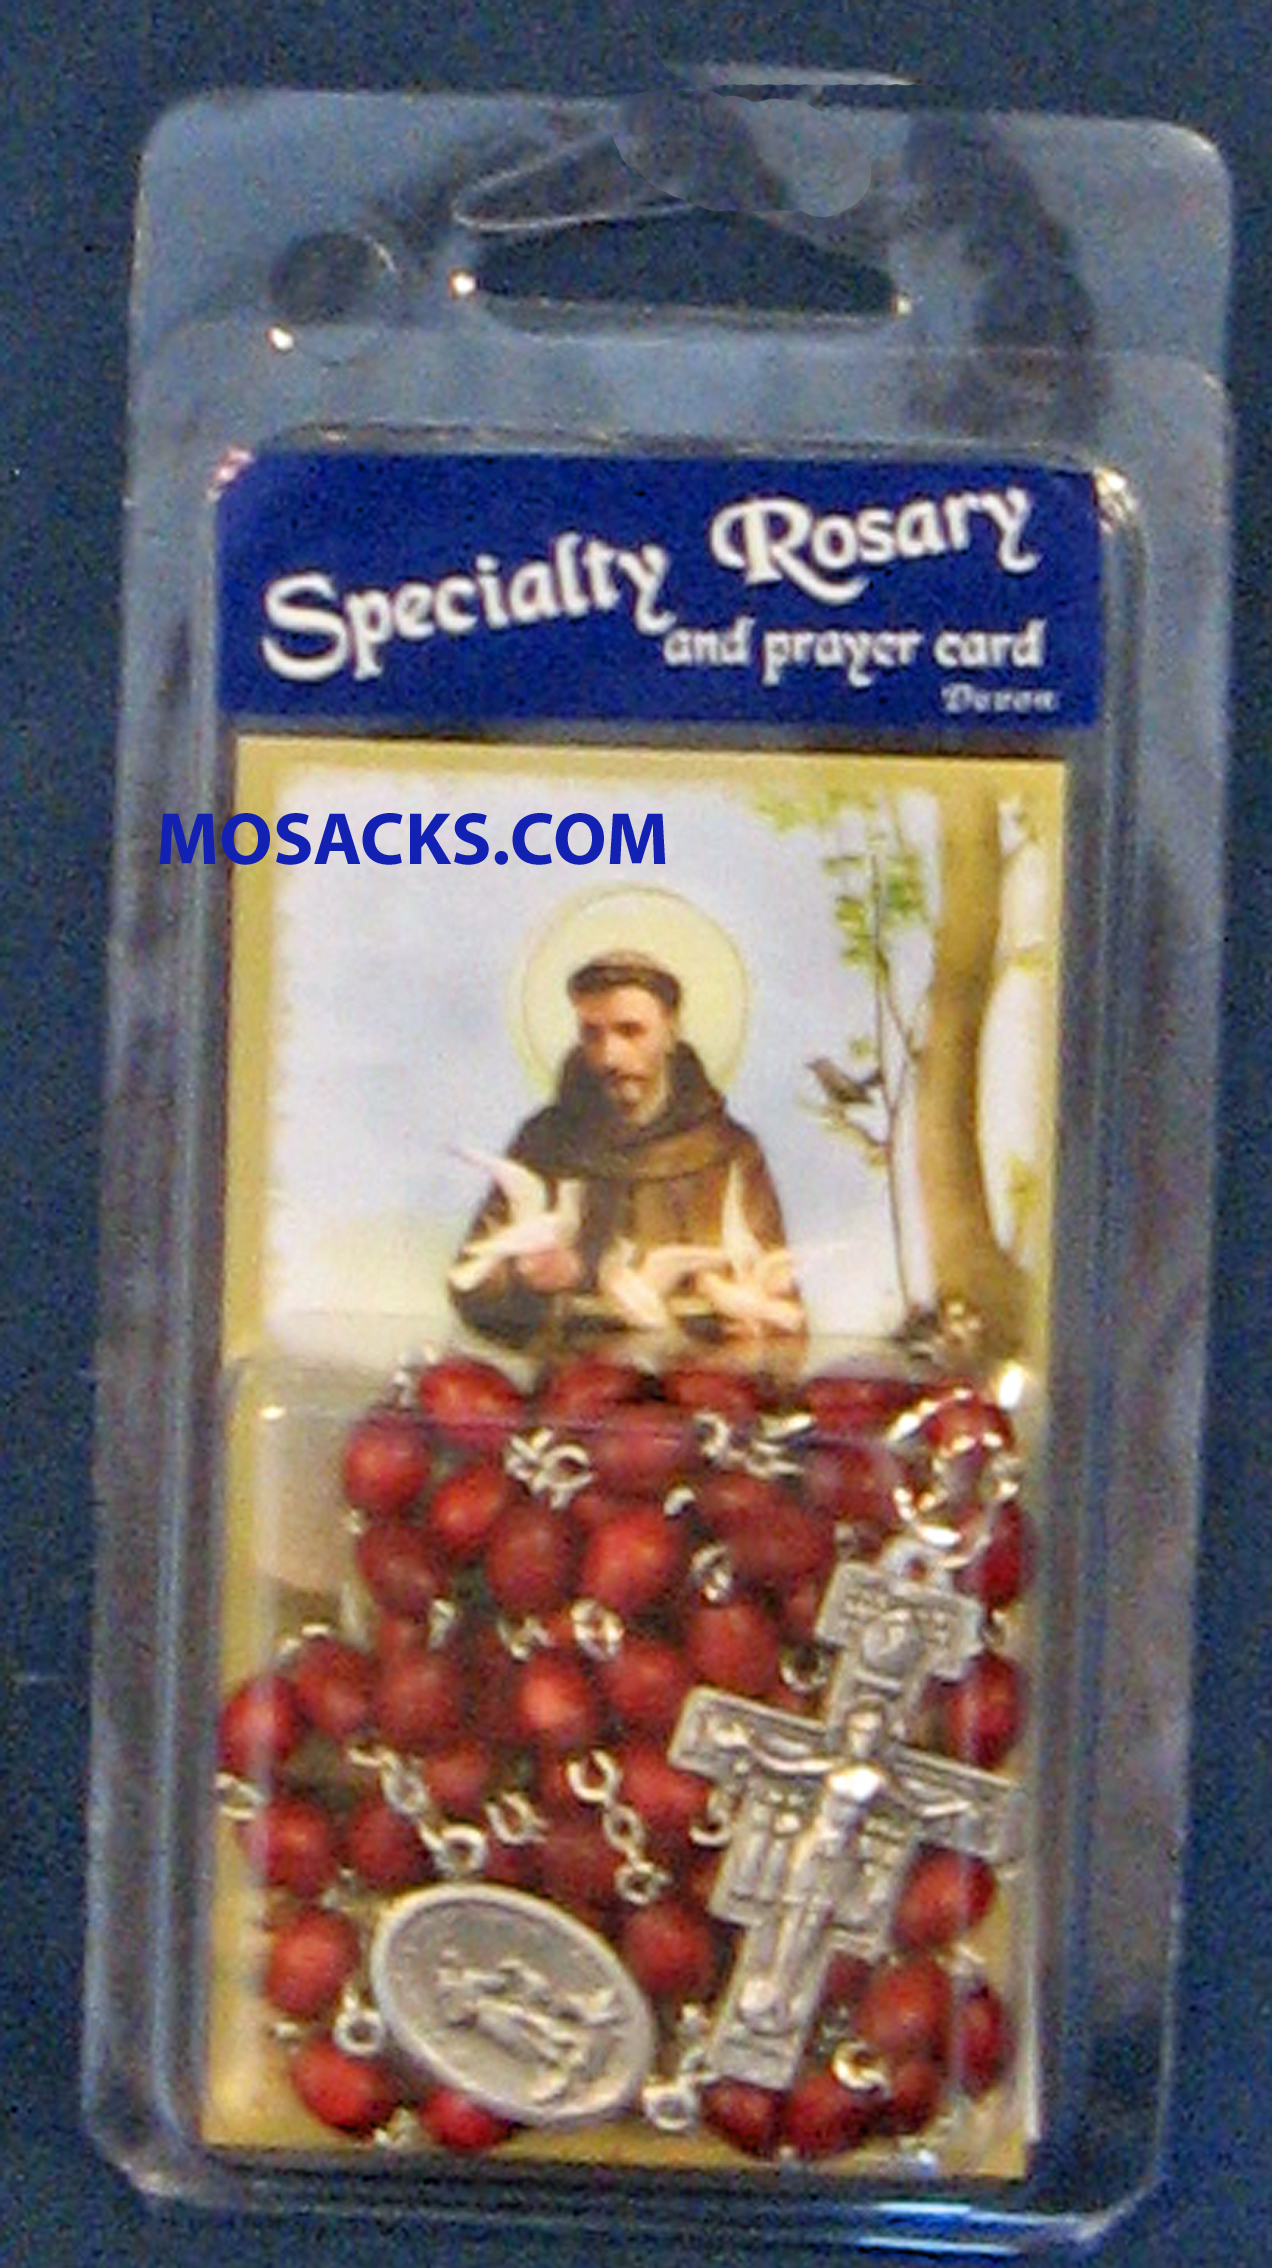 Specialty Rosary St. Francis of Assisi Brown Rosary and Peace Prayer Card 64-08622